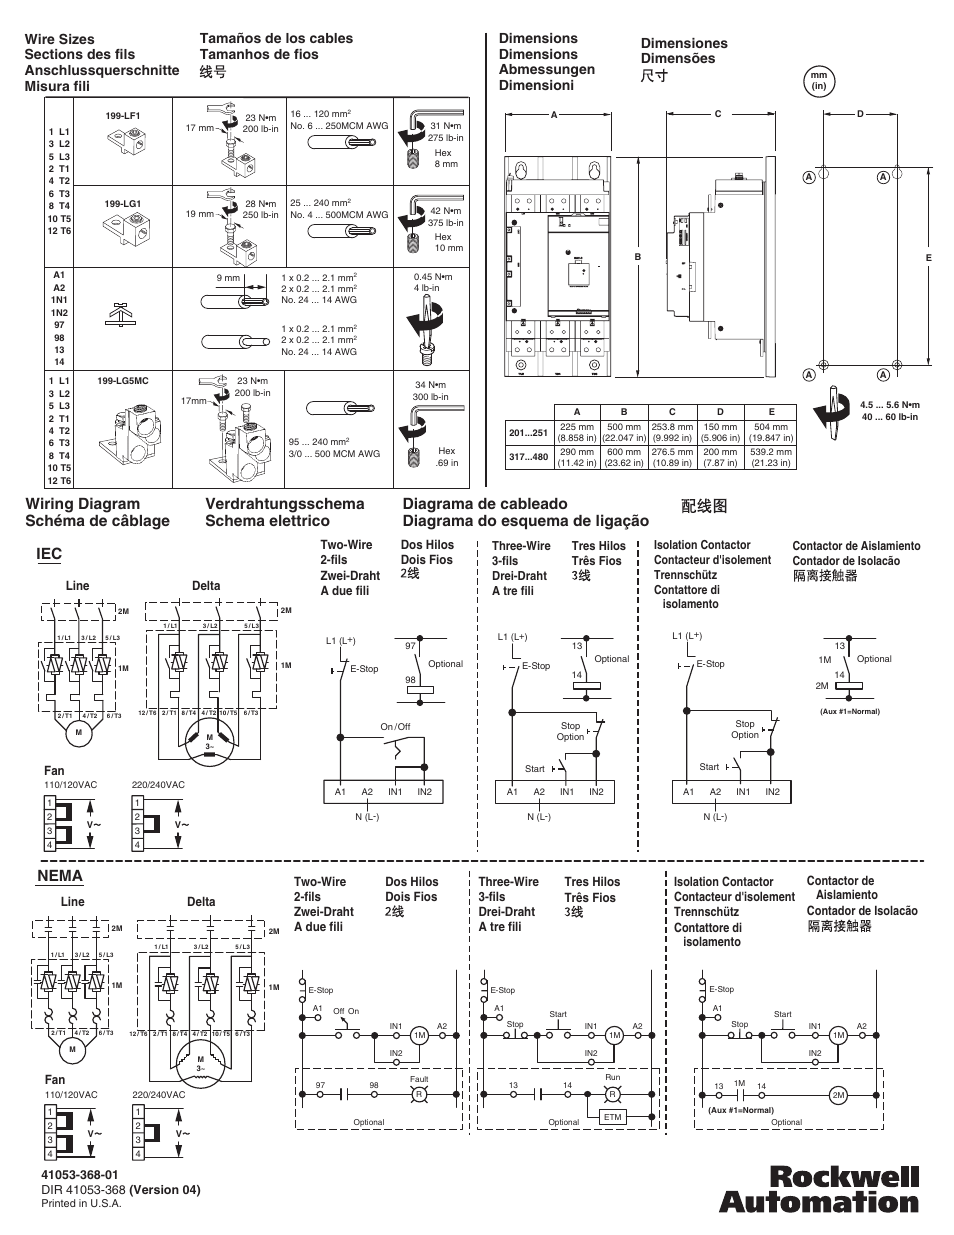 93 Jeep Wrangler Distributor Wiring likewise Powerstat 117t 3 Wiring Diagram together with Building Electrical Wiring Diagram Symbols additionally Dim Mak Pressure Point Location Charts also Wiring Diagram For Yamaha Kodiak 400. on apm wiring diagram